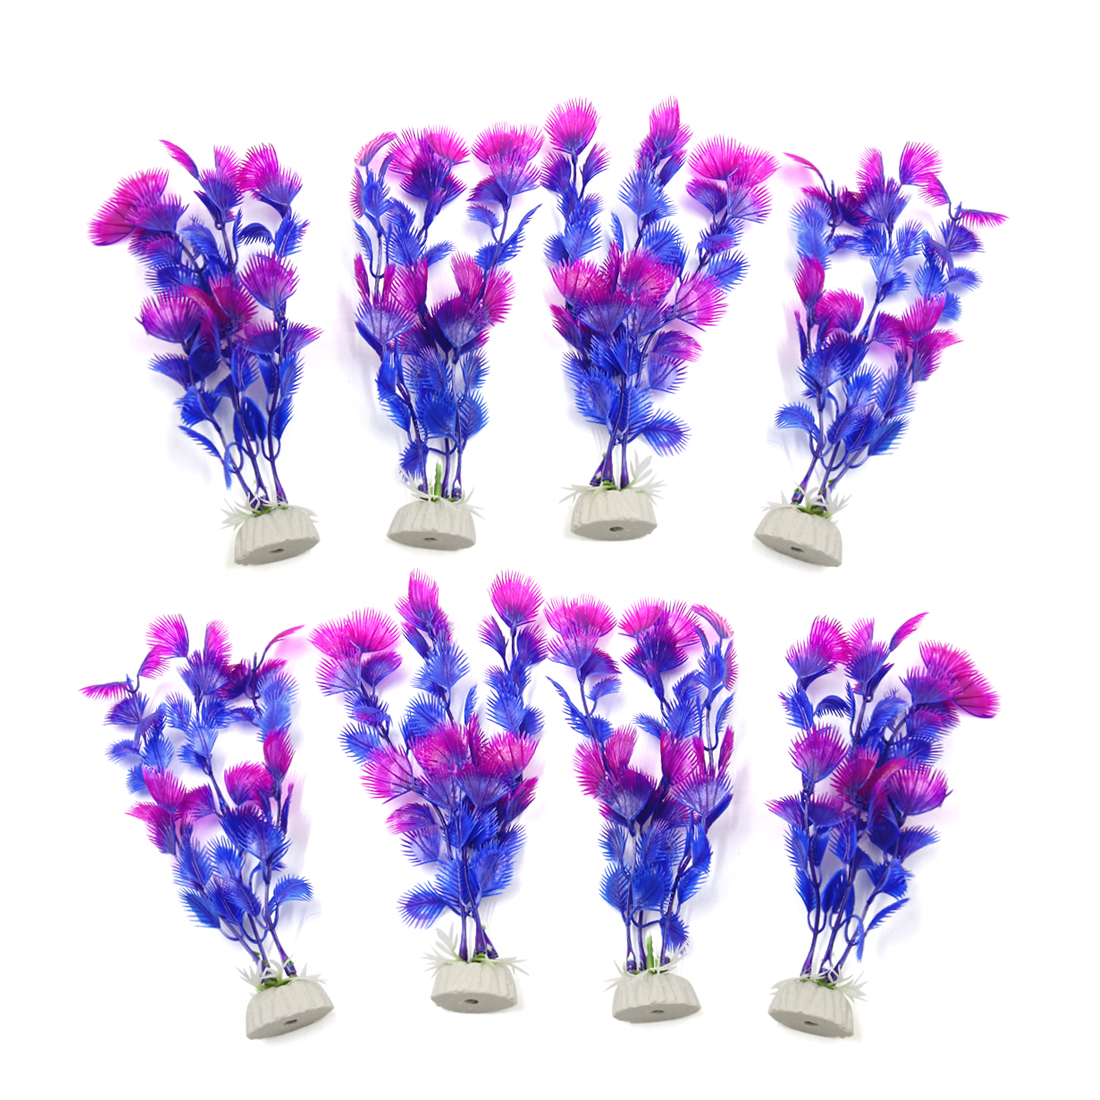 8pcs Purple Aquarium Fish Tank Aquatic Water Plant Decoration Ornament